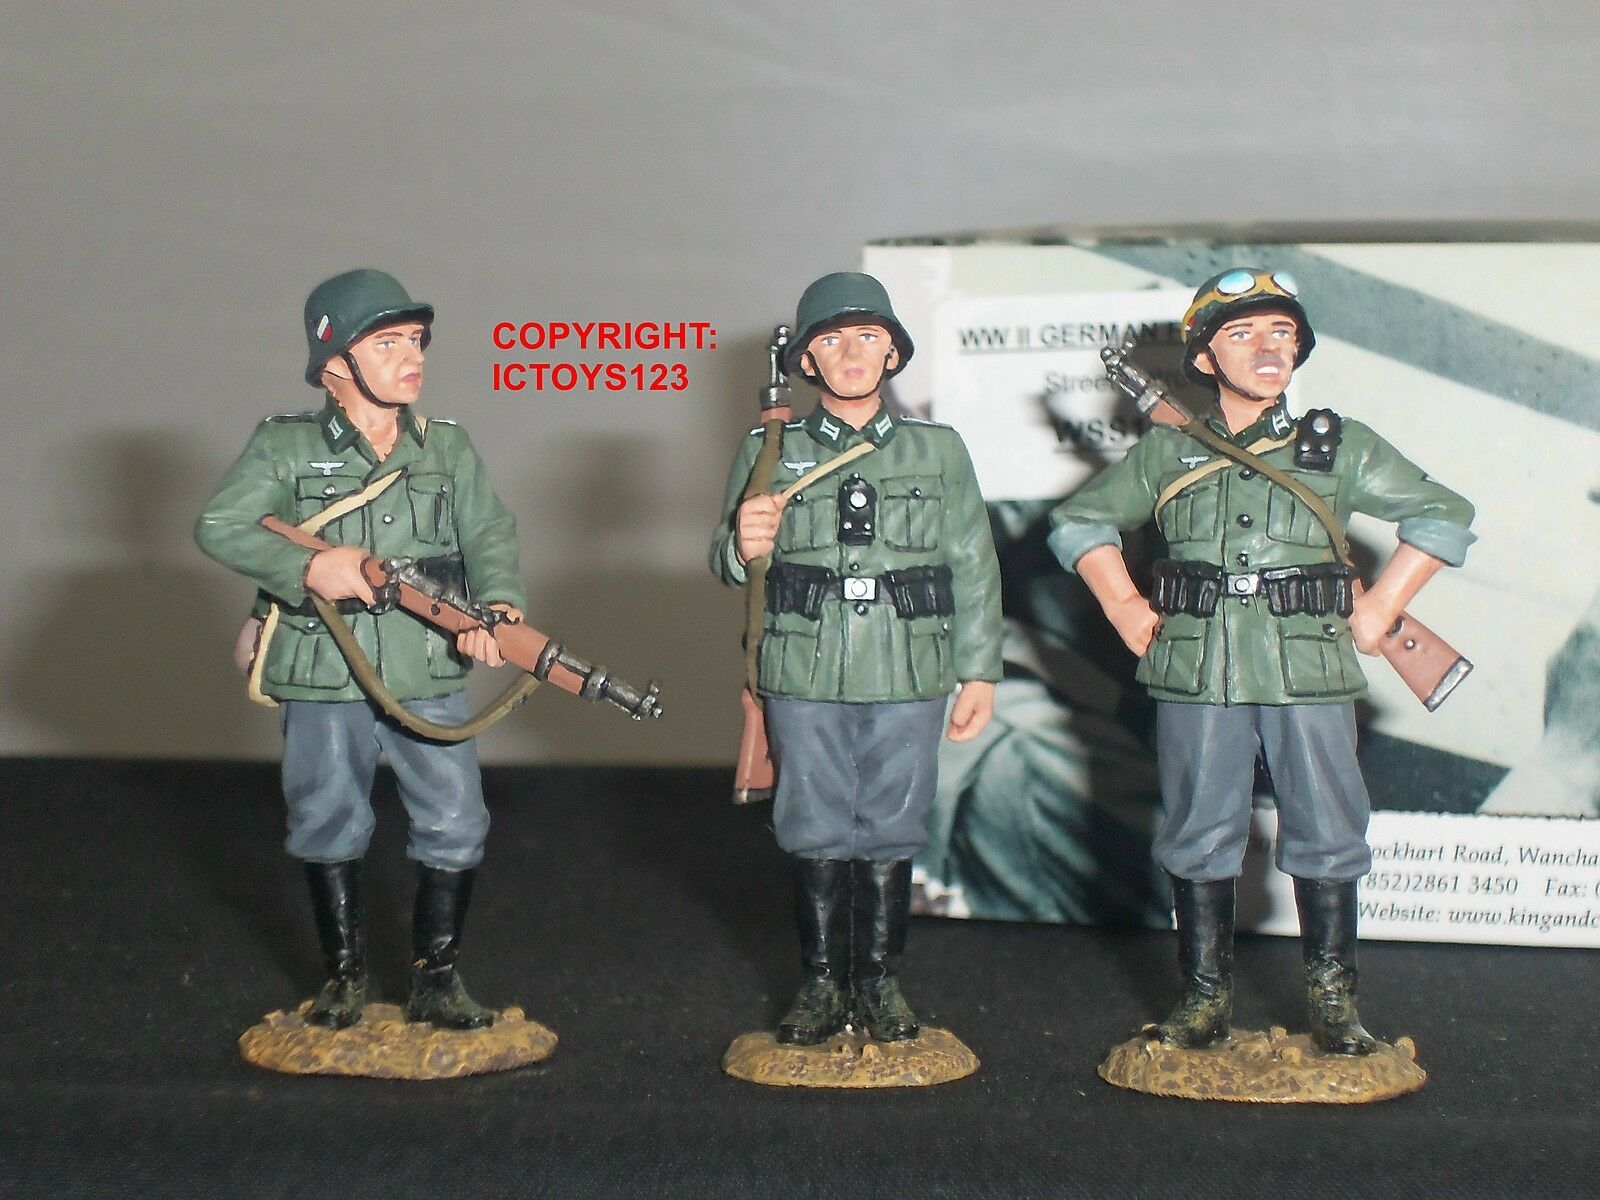 KING AND COUNTRY WSS141 GERMAN FORCES STREET PATROL METAL TOY SOLDIER FIGURE SET